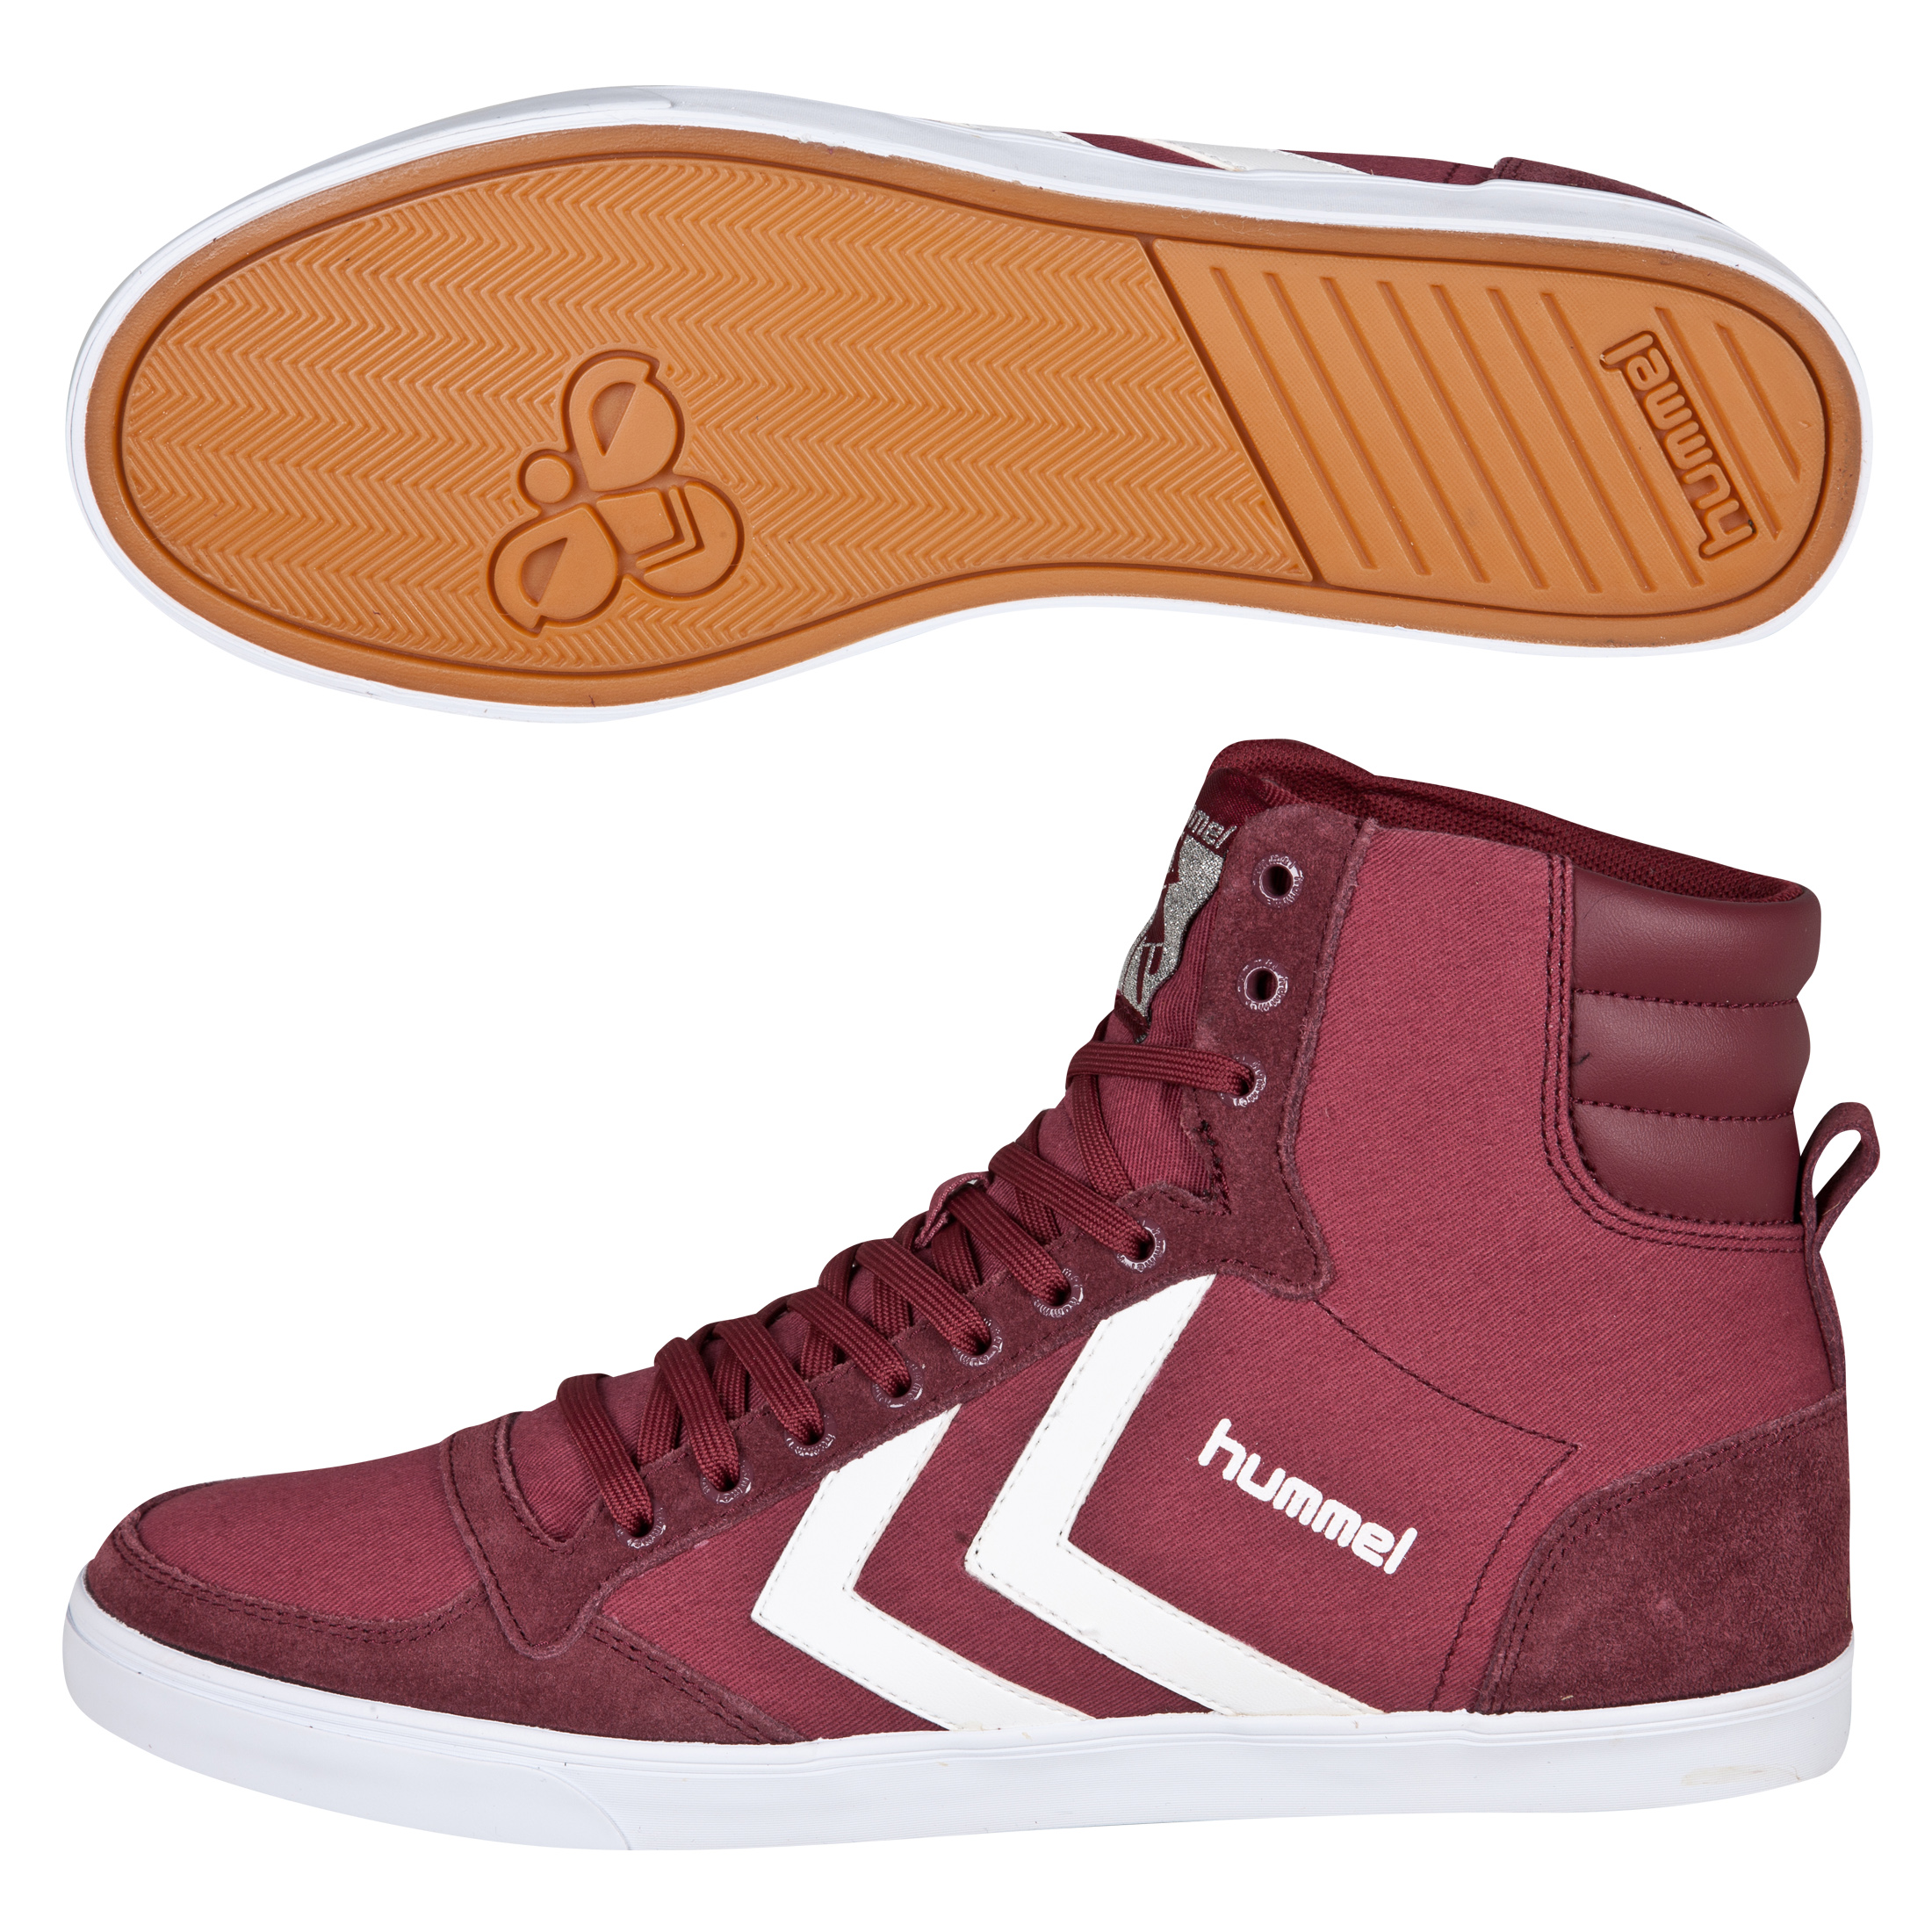 Hummel Slimmer Stadil High Canvas Trainers - Oxblood